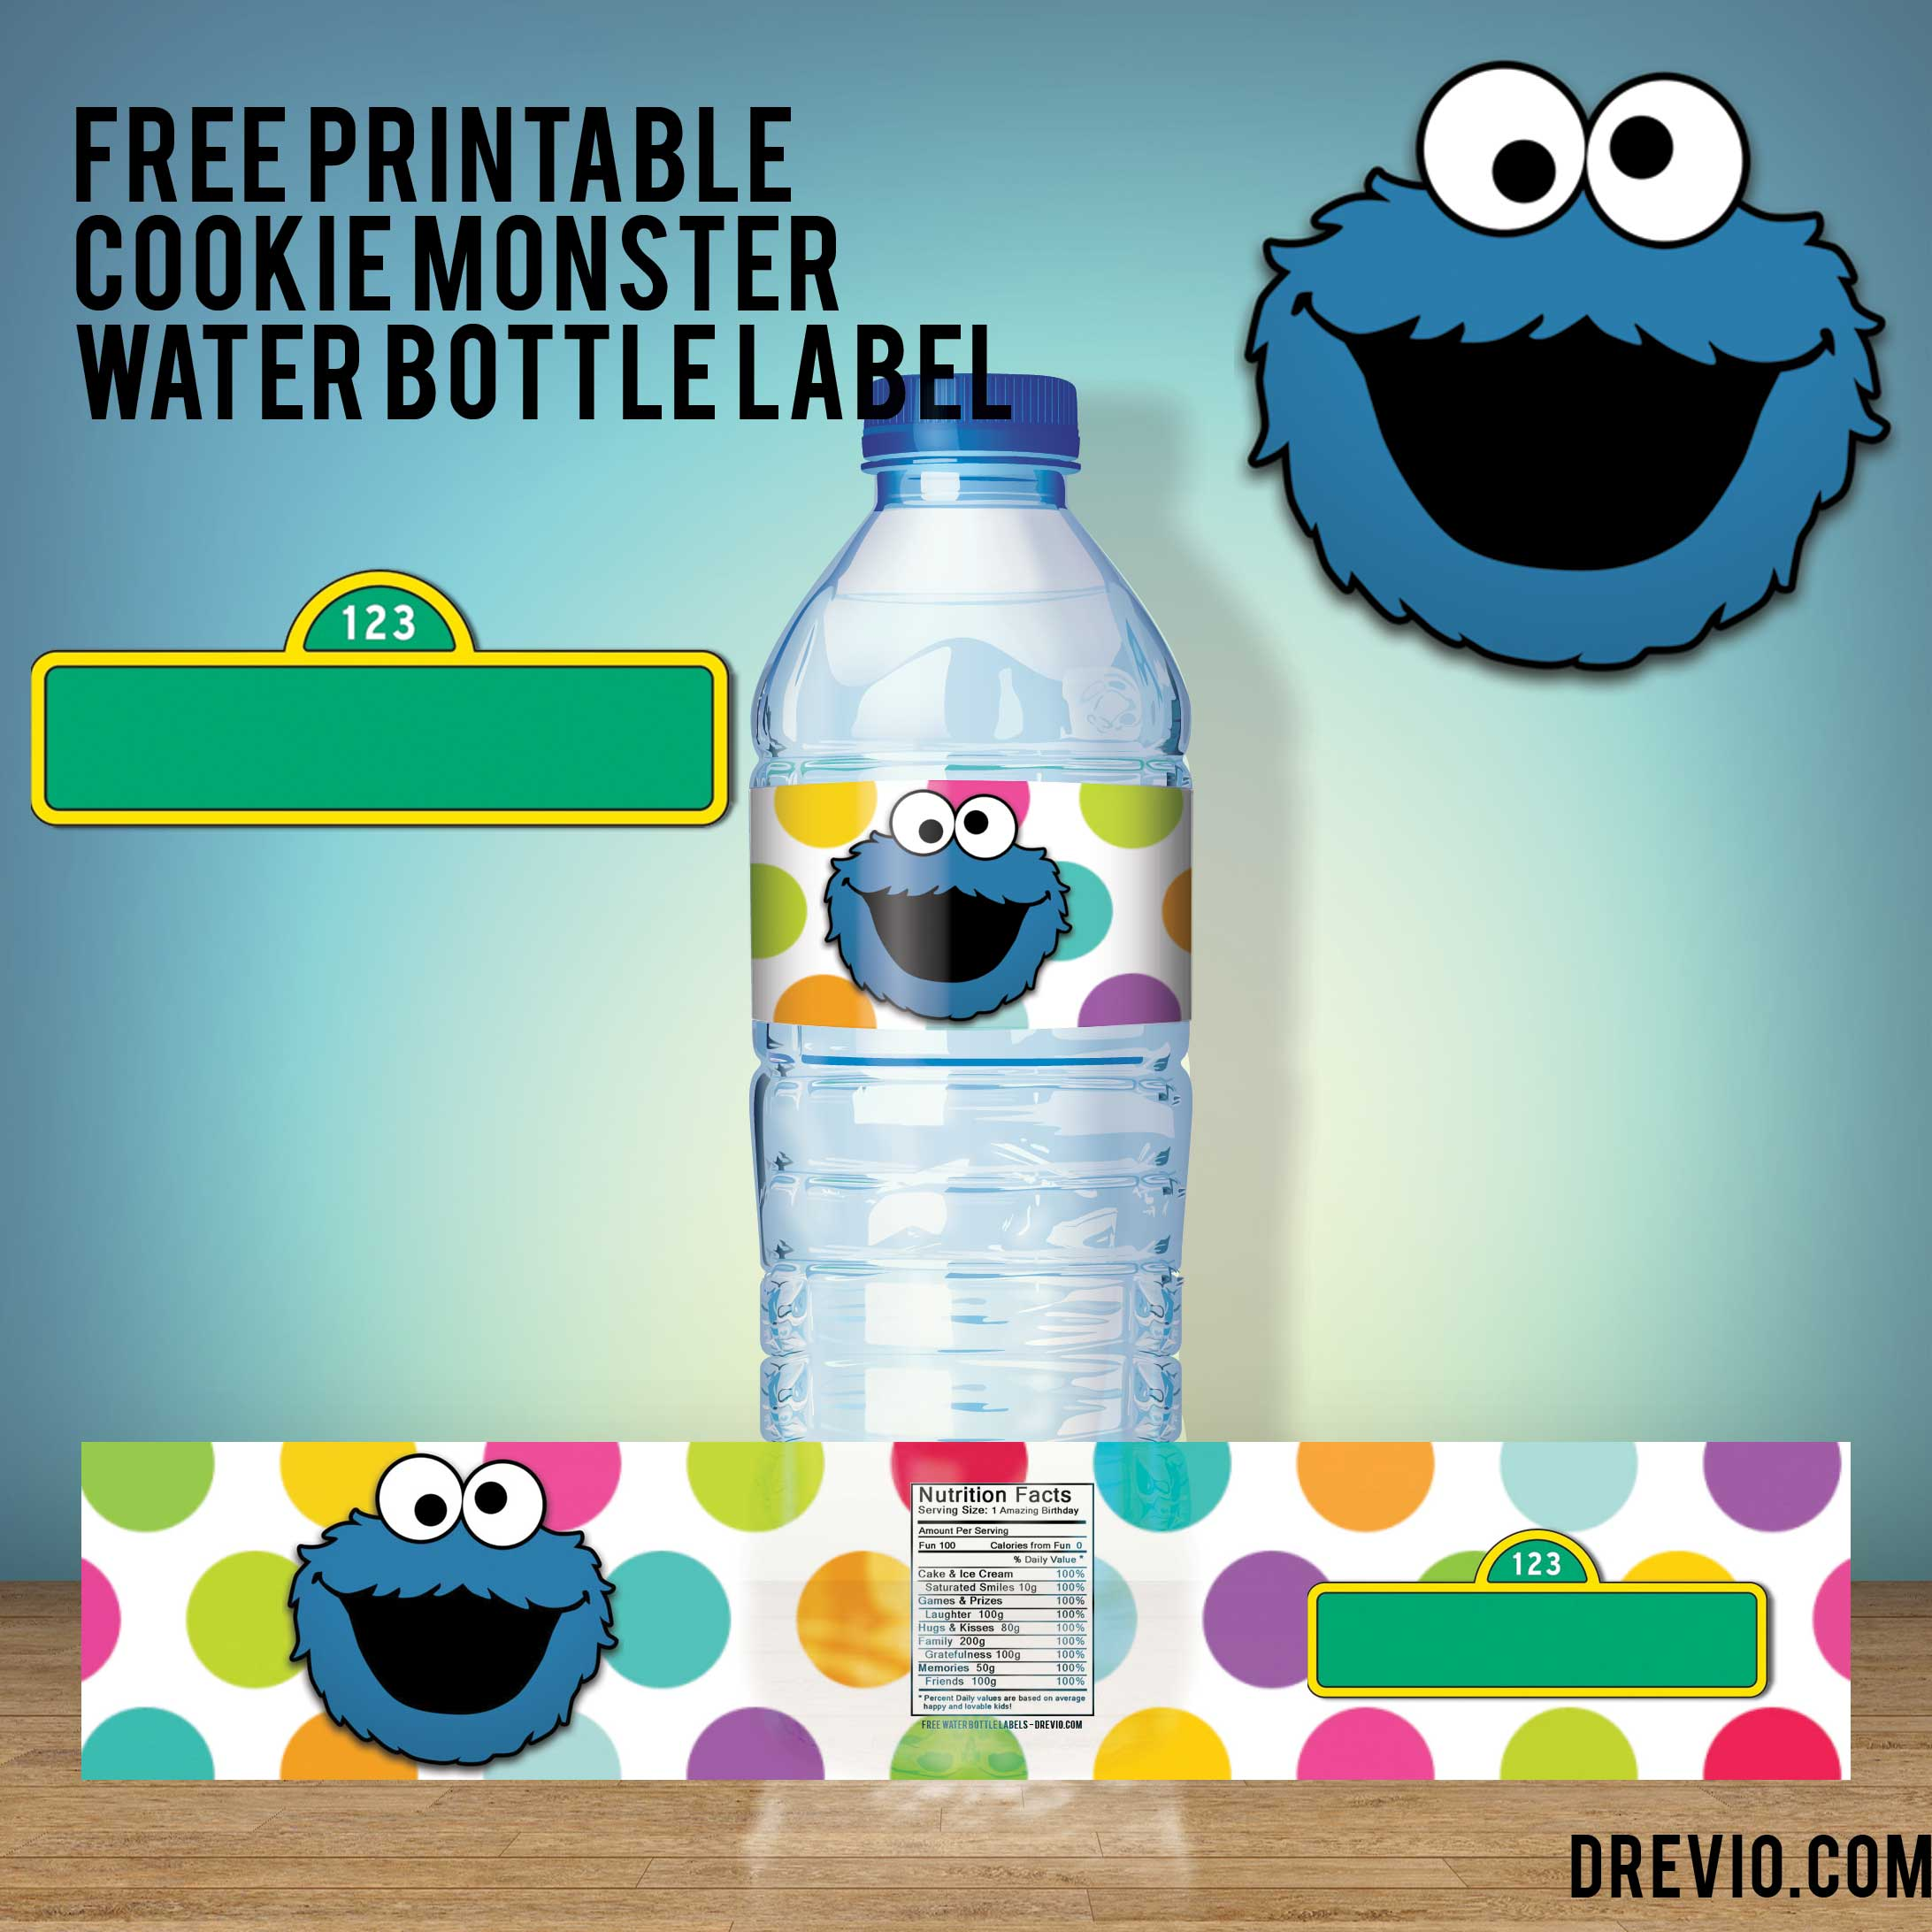 FREE Printable Cookie Monster Water Bottle Label FREE Invitation - Free printable water bottle label template